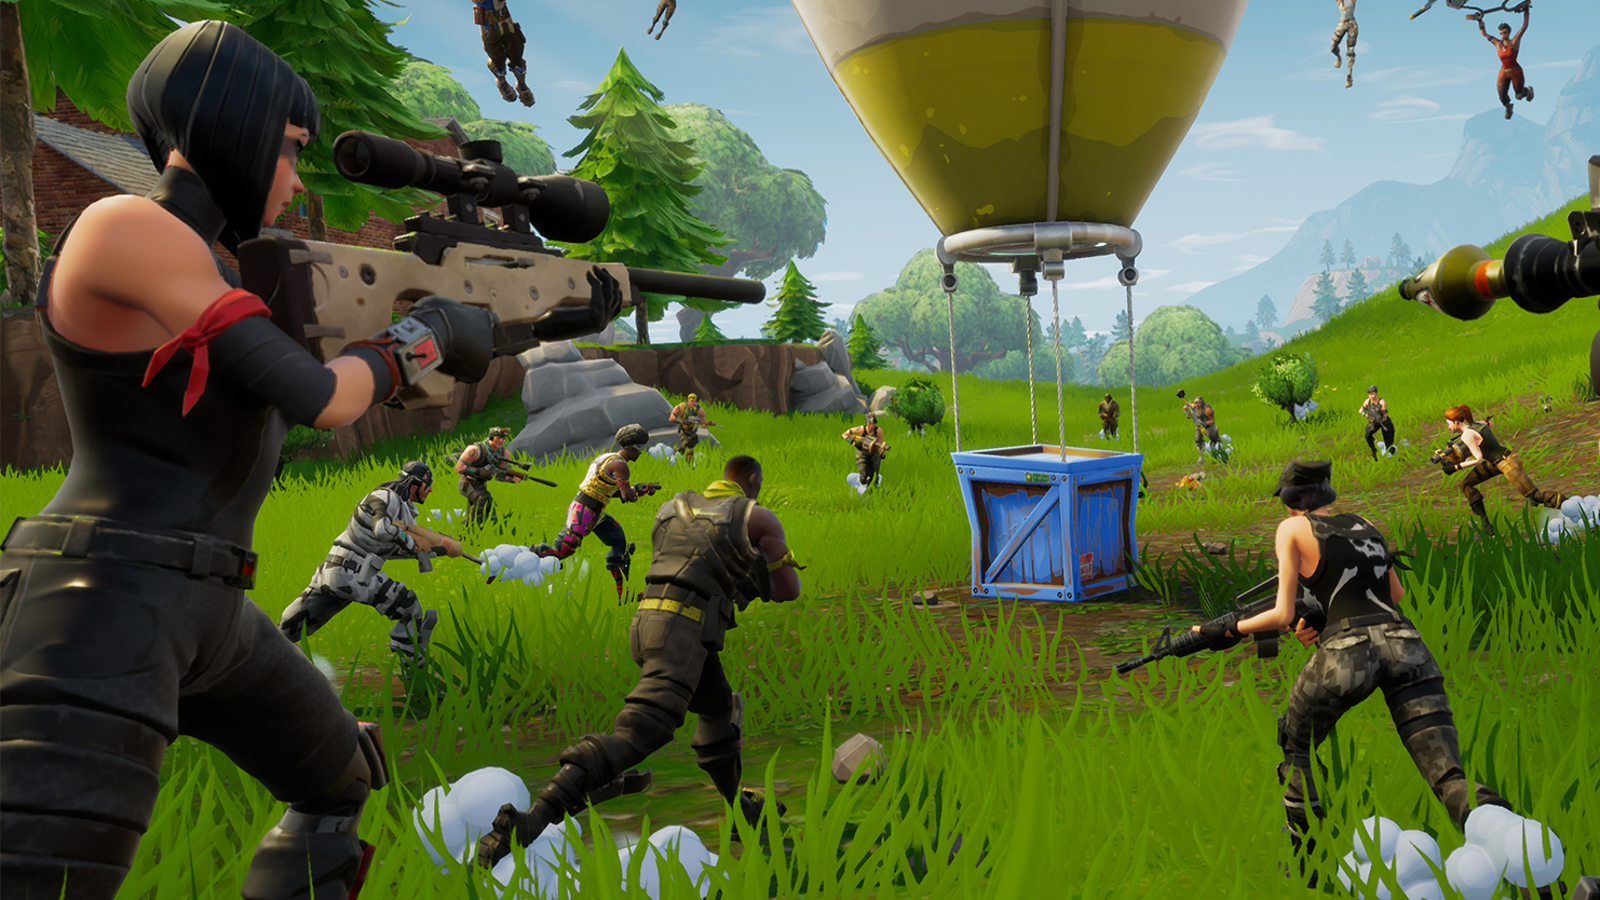 Fortnite Summer Skirmish Winner Accused Of Cheating, Defended By Epic